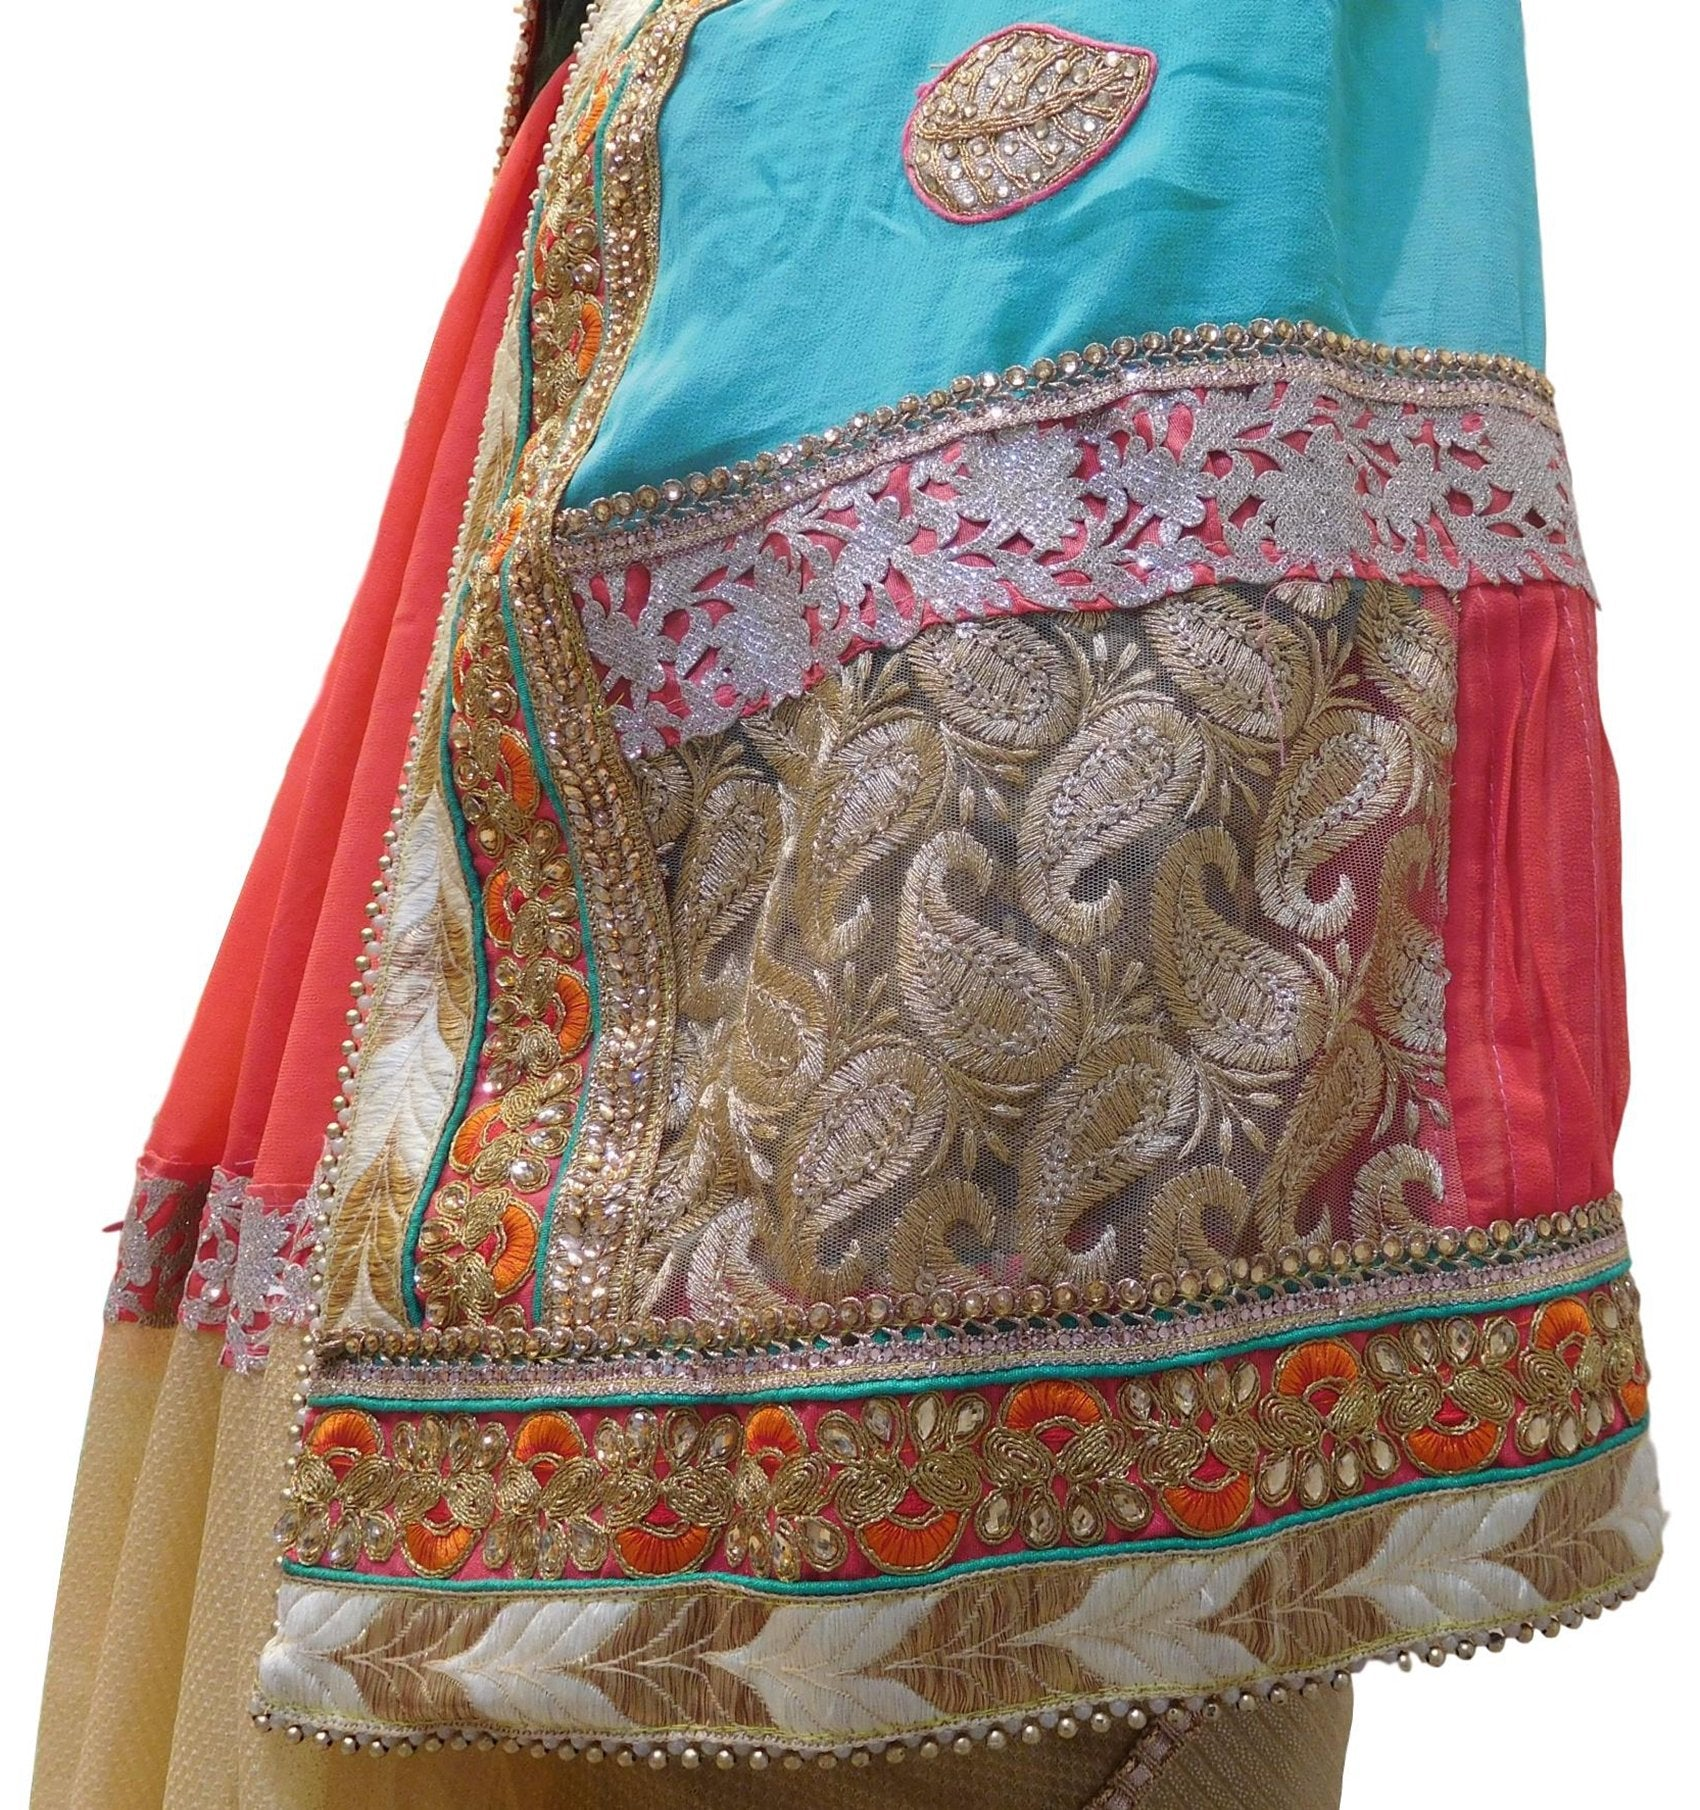 Turquoise Red & Beige Designer PartyWear Georgette (Viscos) & Lycra Thread Zari Sequence Pearl Stone Hand Embroidery Cutwork Border Saree Sari